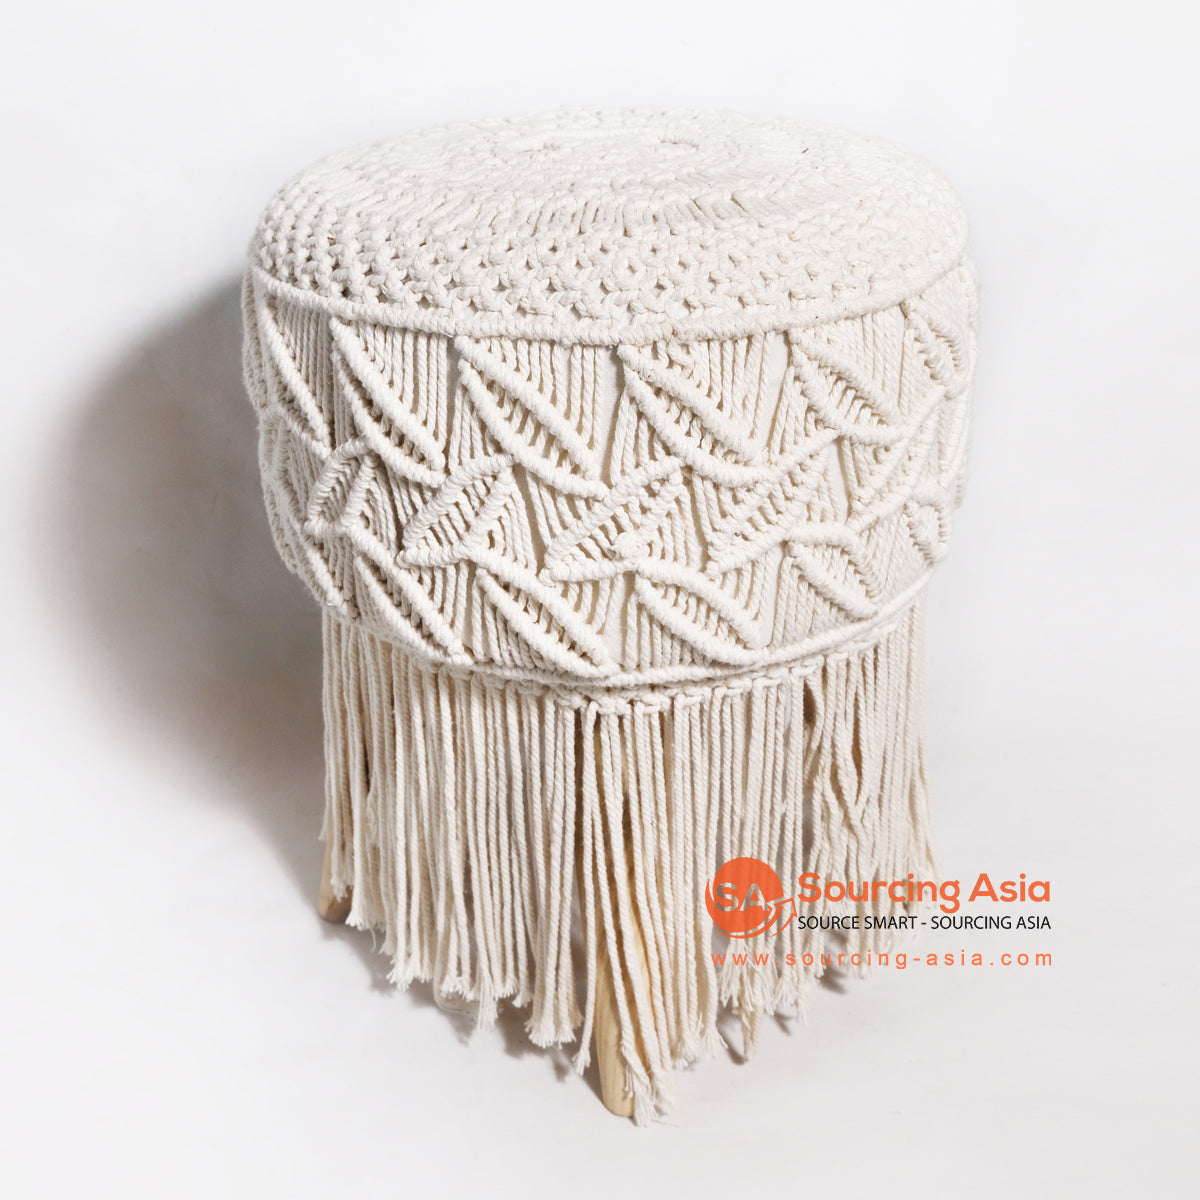 MRC044 WOODEN STOOL WITH WHITE MACRAME